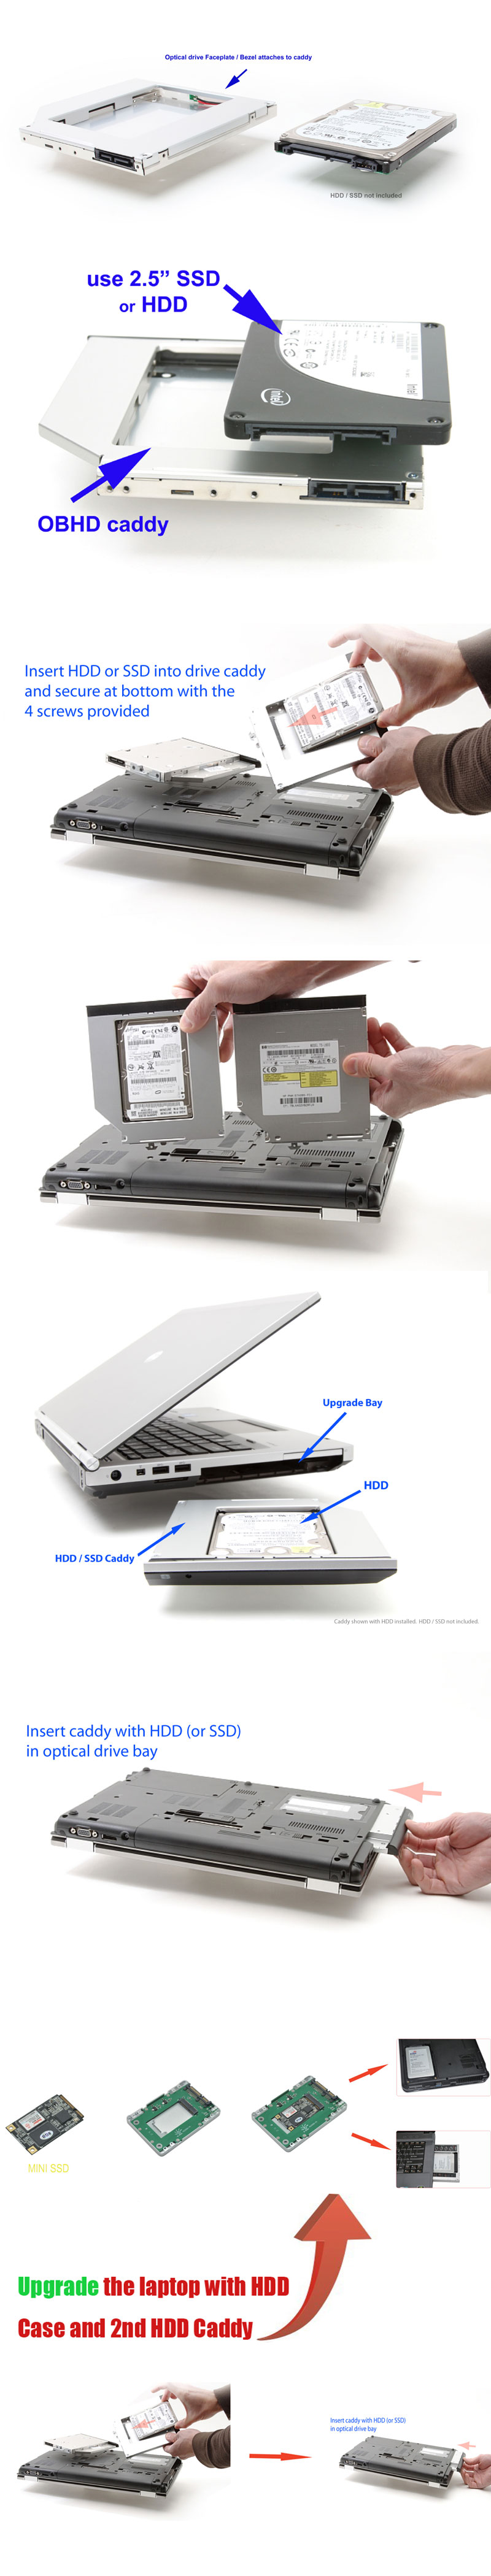 install step of 2nd hdd caddy